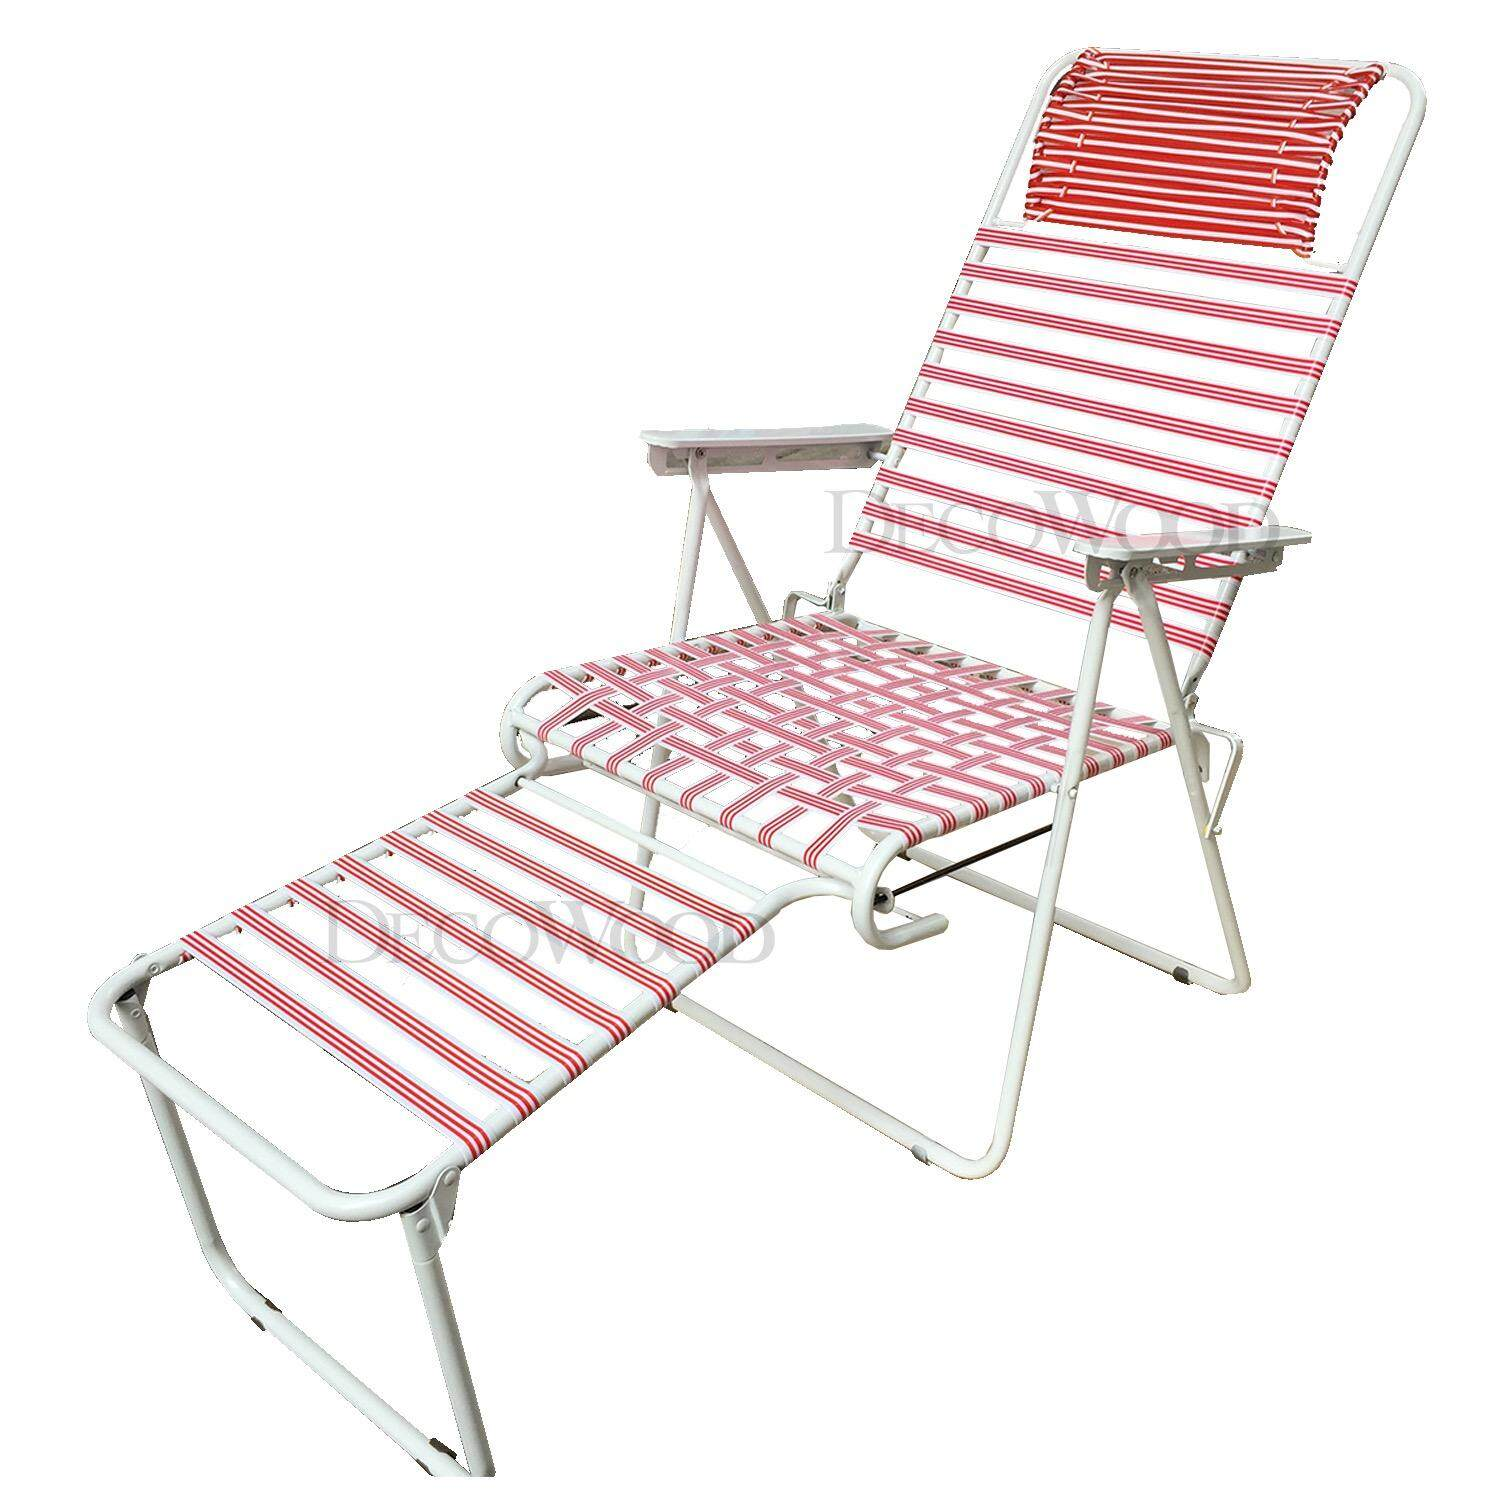 Ready-Fixed Relax Lazy Chair/Nap Chair/Relax Chair/Sleep Chair/Resting Chair/Rest Chair/Kerusi Malas/Kerusi Santai With 20MM Pipe